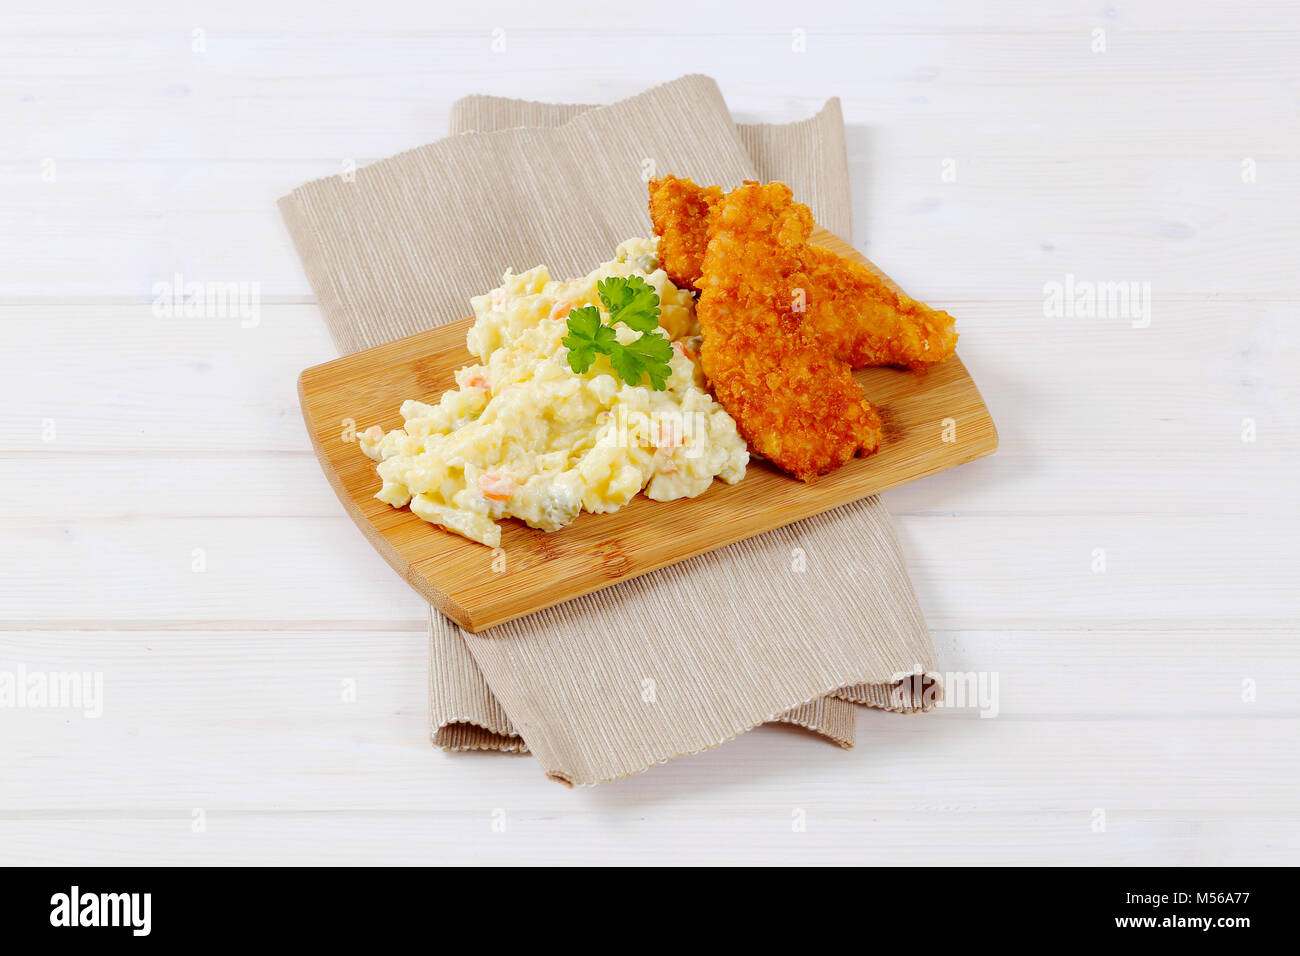 chicken schnitzels with potato salad on wooden cutting board - Stock Image